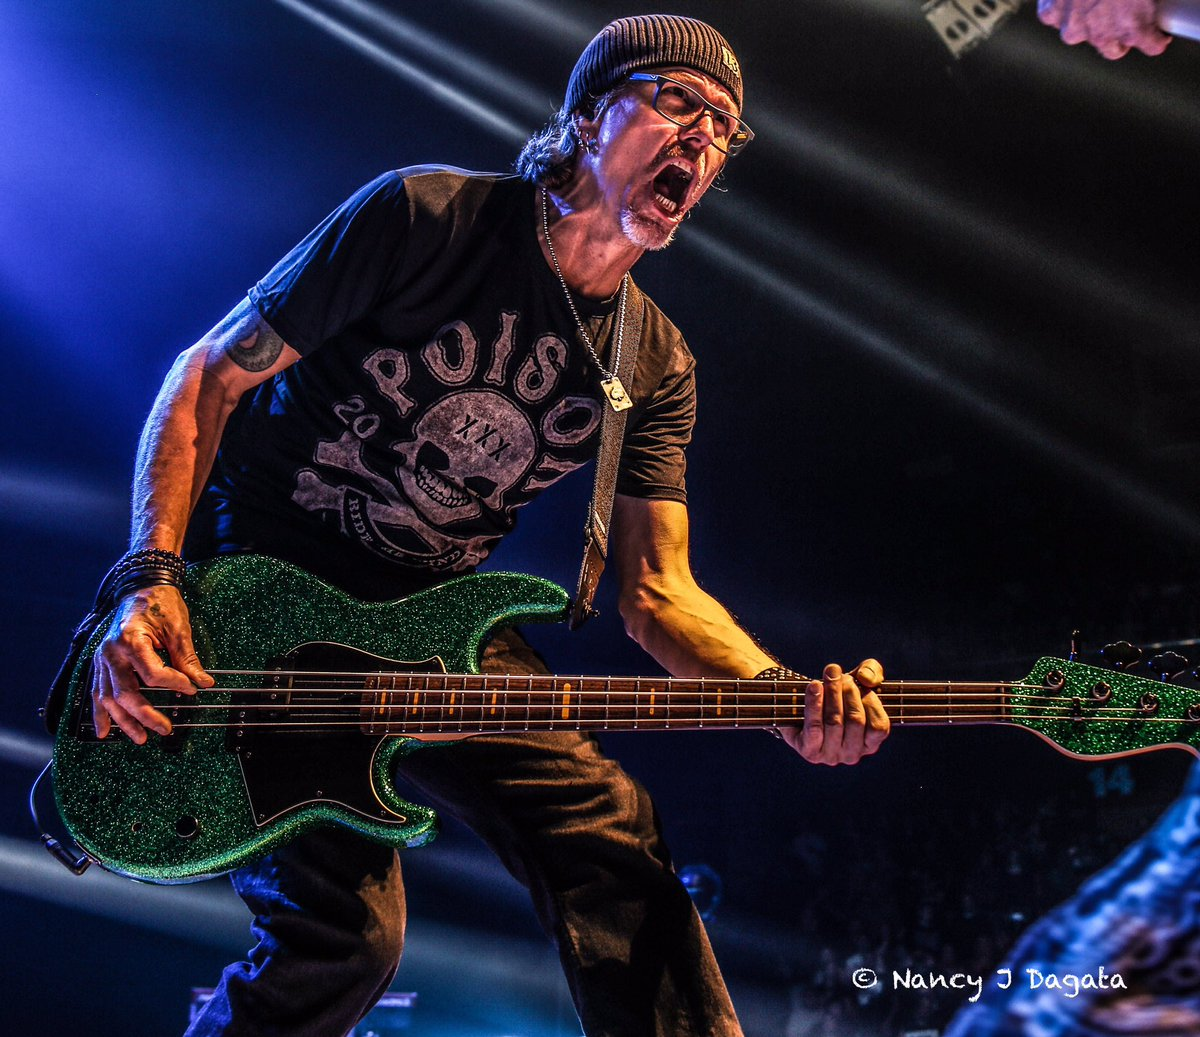 #Bobby Dall - @Poison still kicking ass! https://t.co/SW7KF7oGBt